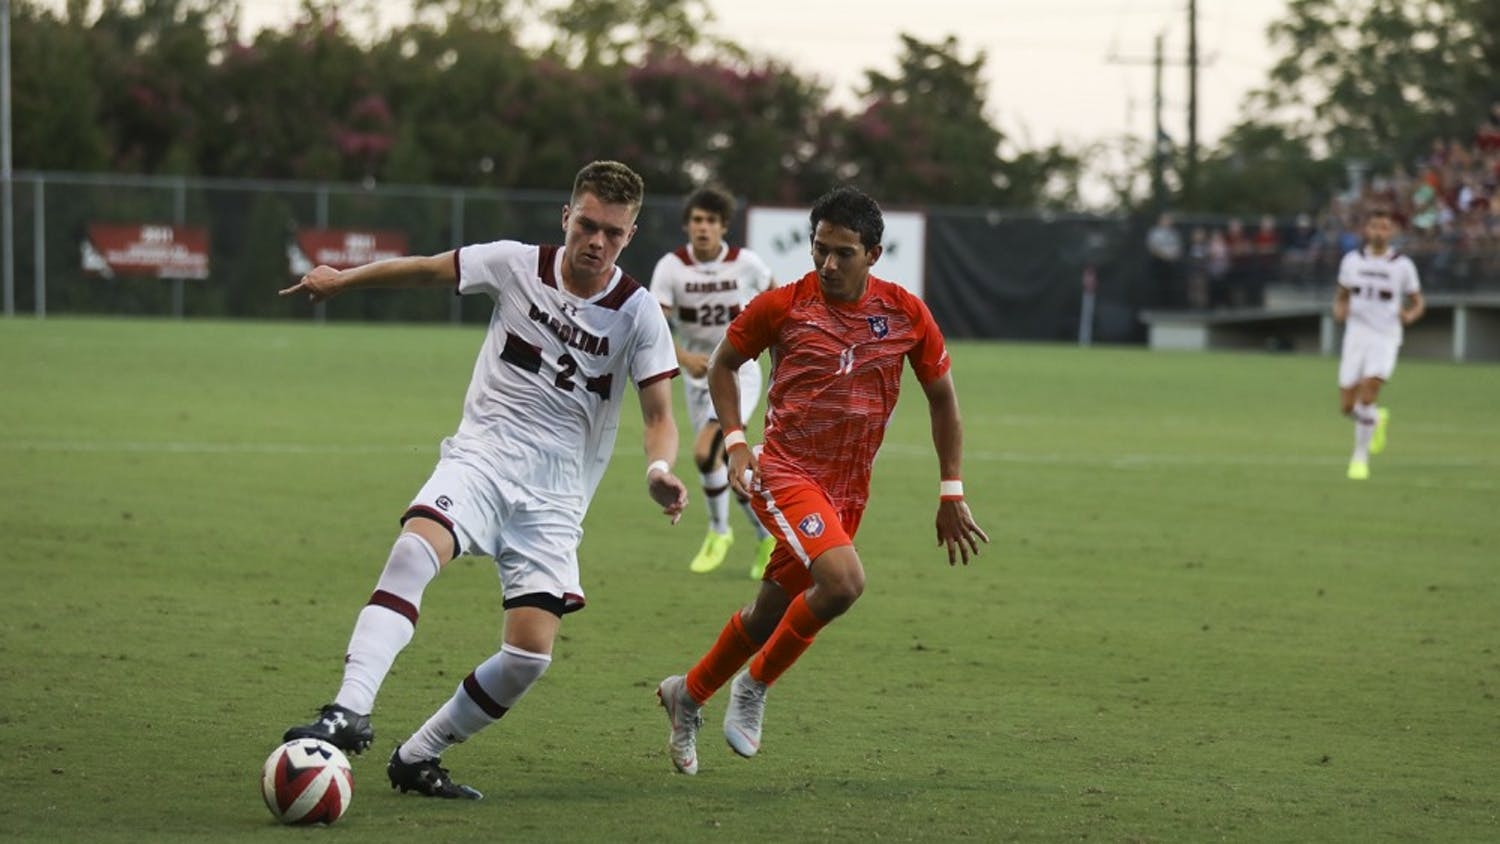 Midfielder Mitchell Myers dribbles in a game against Clemson in 2018. The Gamecocks host the Tigers Thursday night at Stone Stadium.